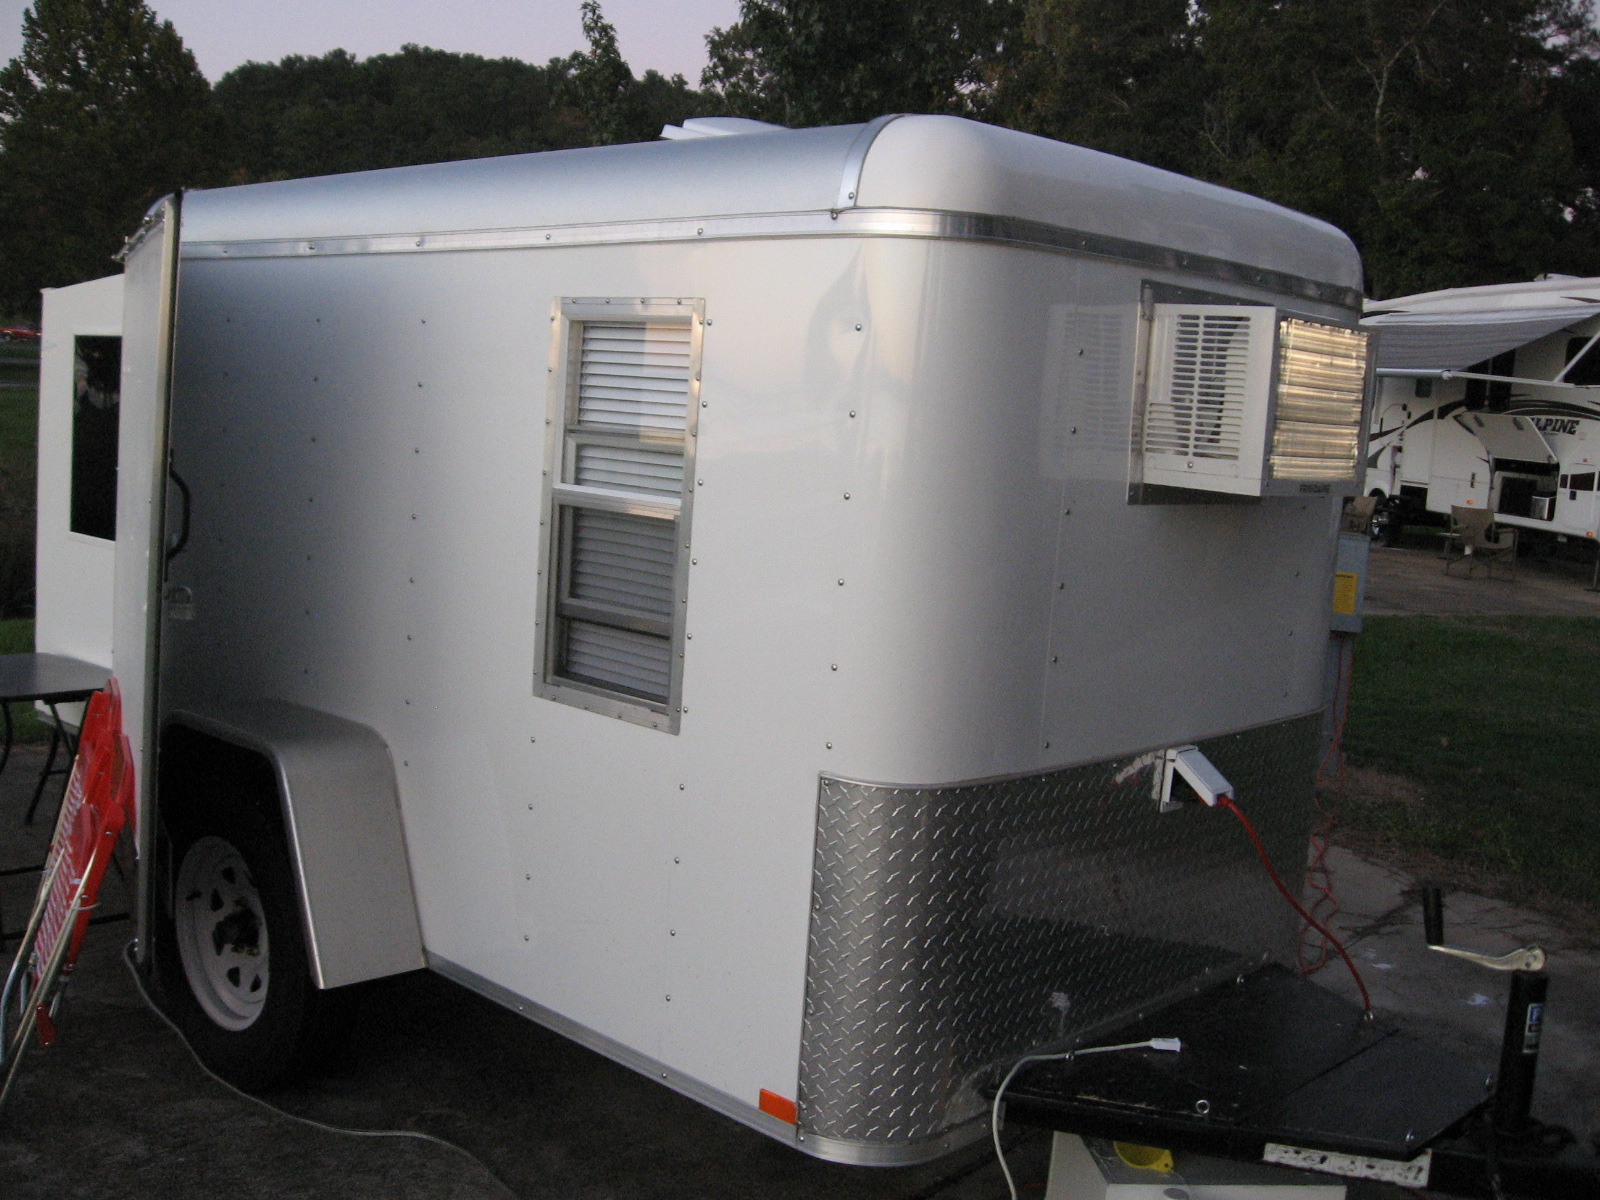 Lastest Enclosed Utility Trailer Camper 5 Foot By 8 Foot Cargo Trailer